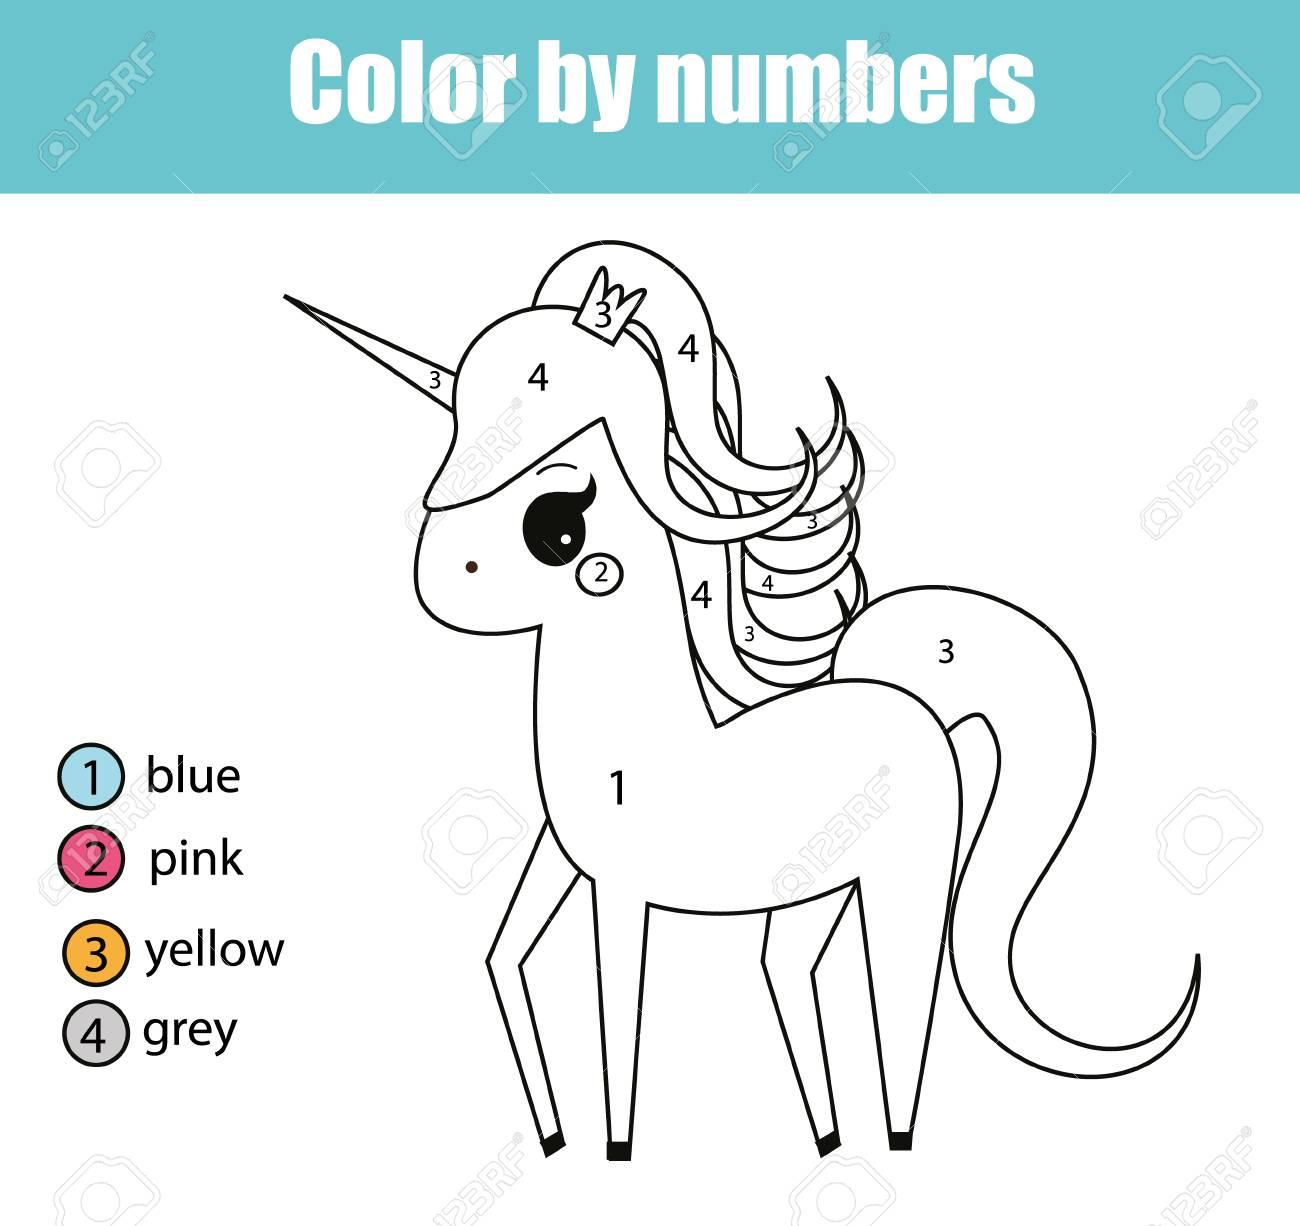 Coloring Page With Cute Unicorn Character Color By Numbers Educational Children Game Drawing Kids